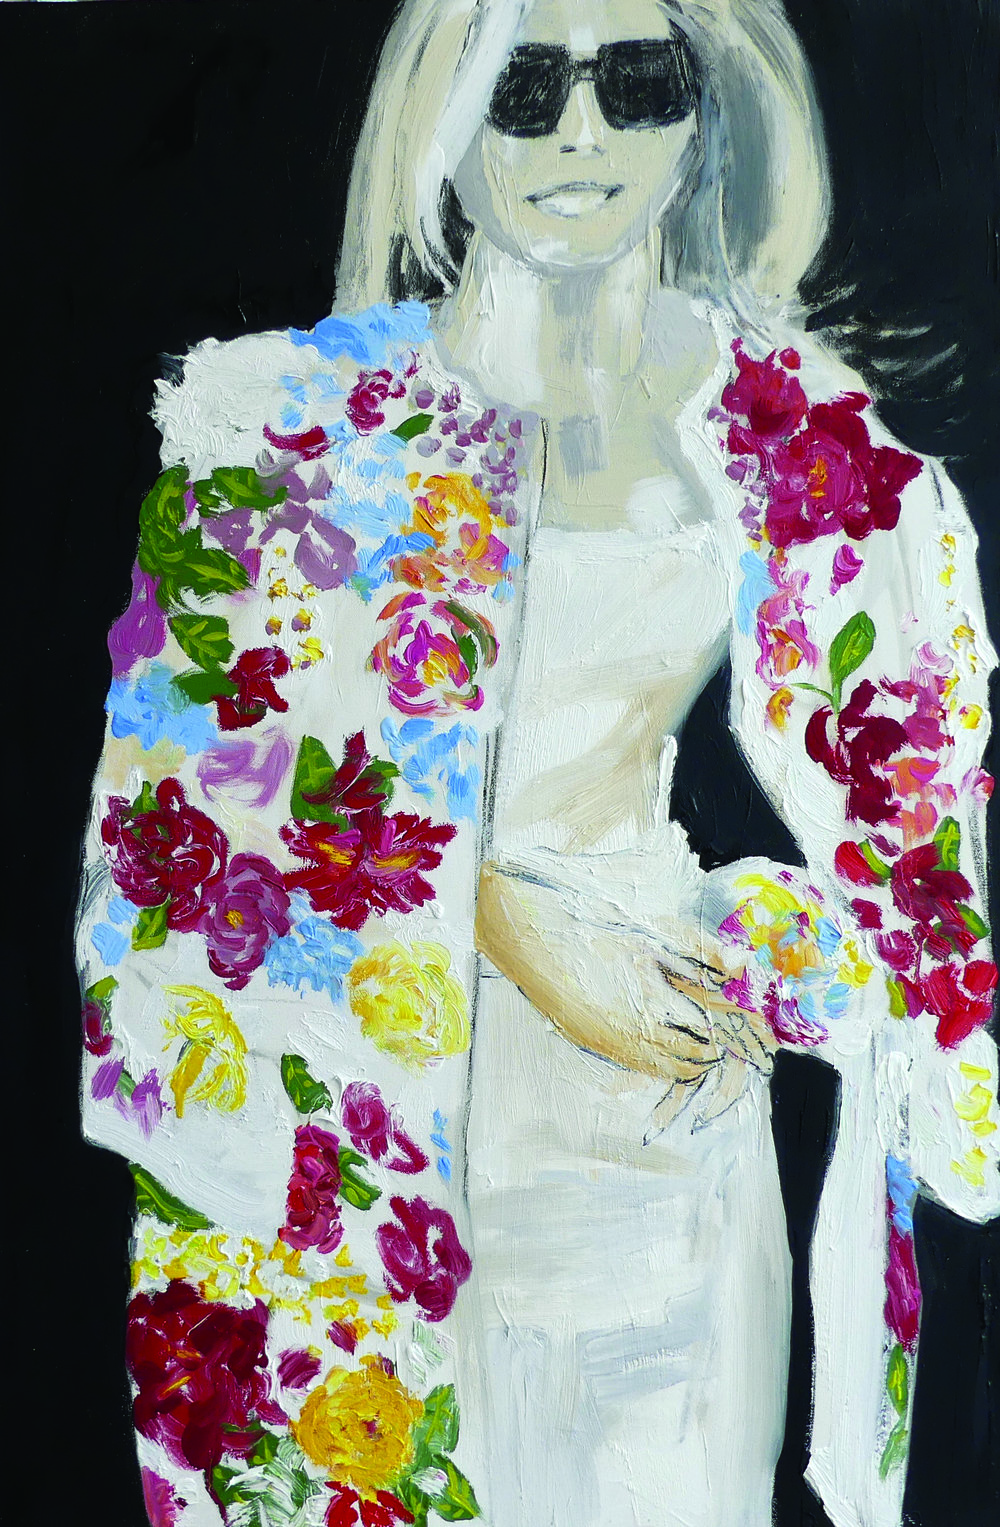 Floral coat with multicolored silk flowers that retails for $51,500.  Worn: Chierici Palace, G7 first ladies visit to Catania, Italy  Stefano Gabbana  Domenico Dolce